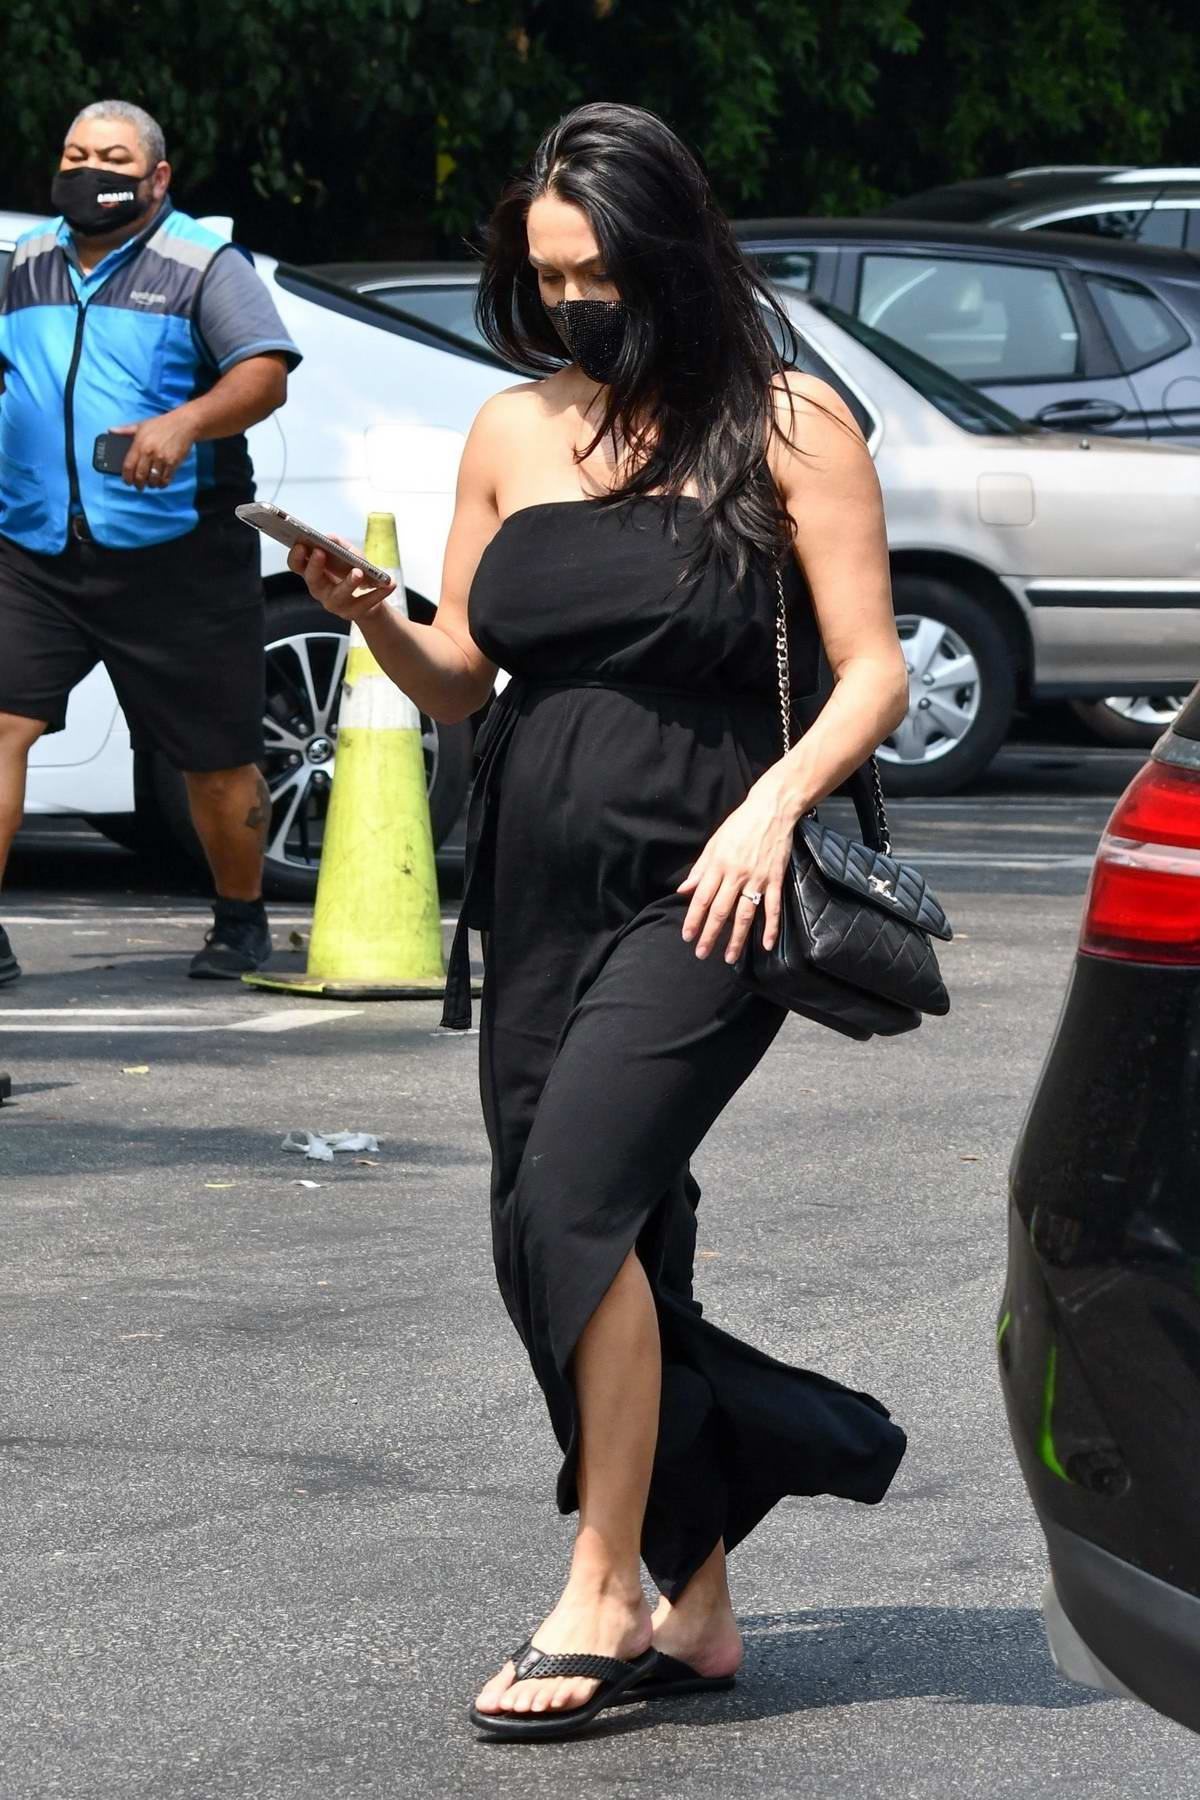 Nikki Bella seen wearing a black strapless dress during a shopping trip to Whole Foods in Studio City, California